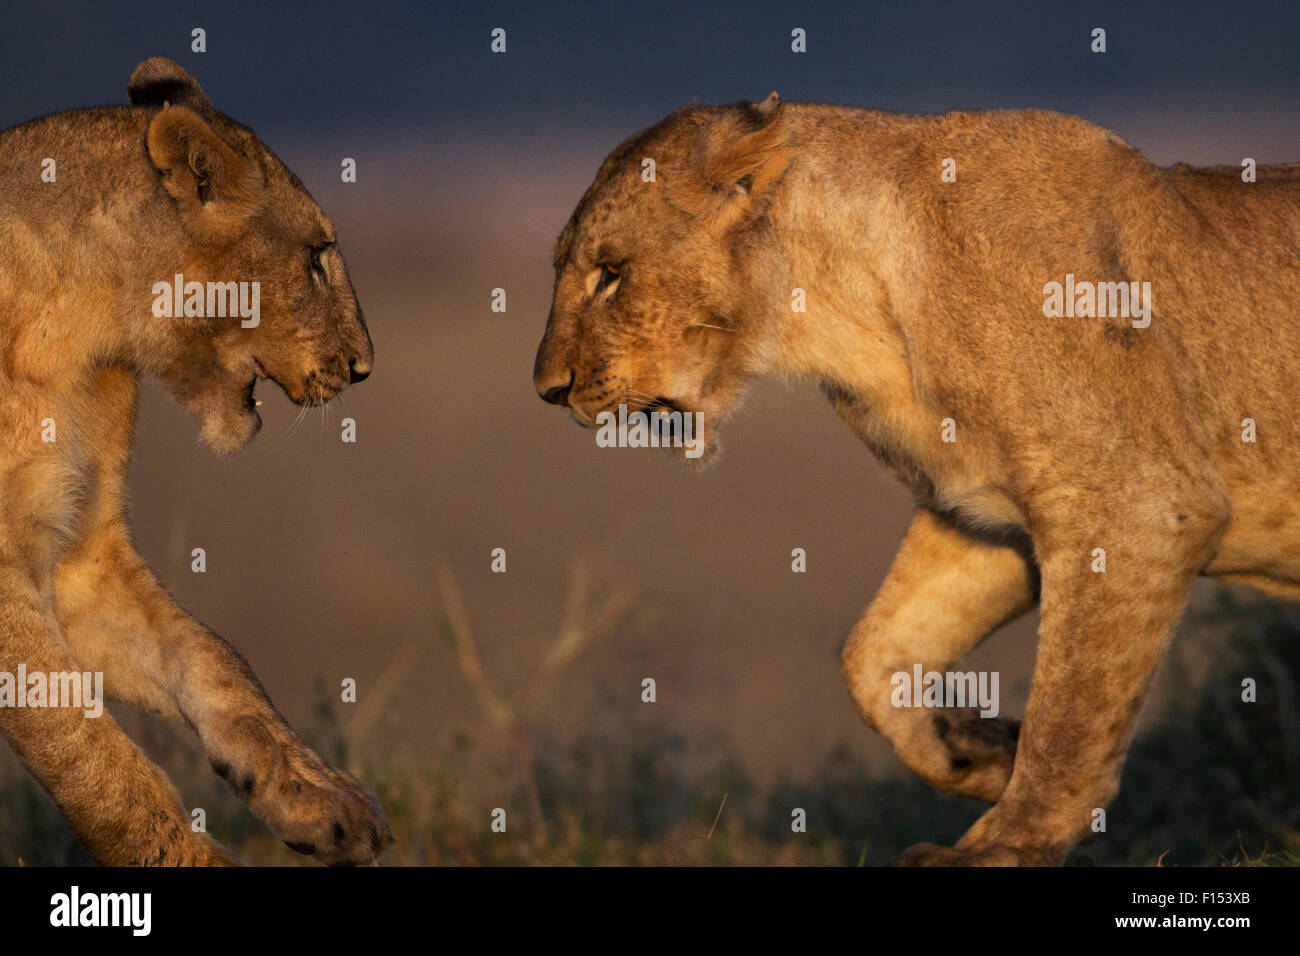 Lion (Panthera leo) juveniles playing. Maasai Mara National Reserve, Kenya. - Stock Image